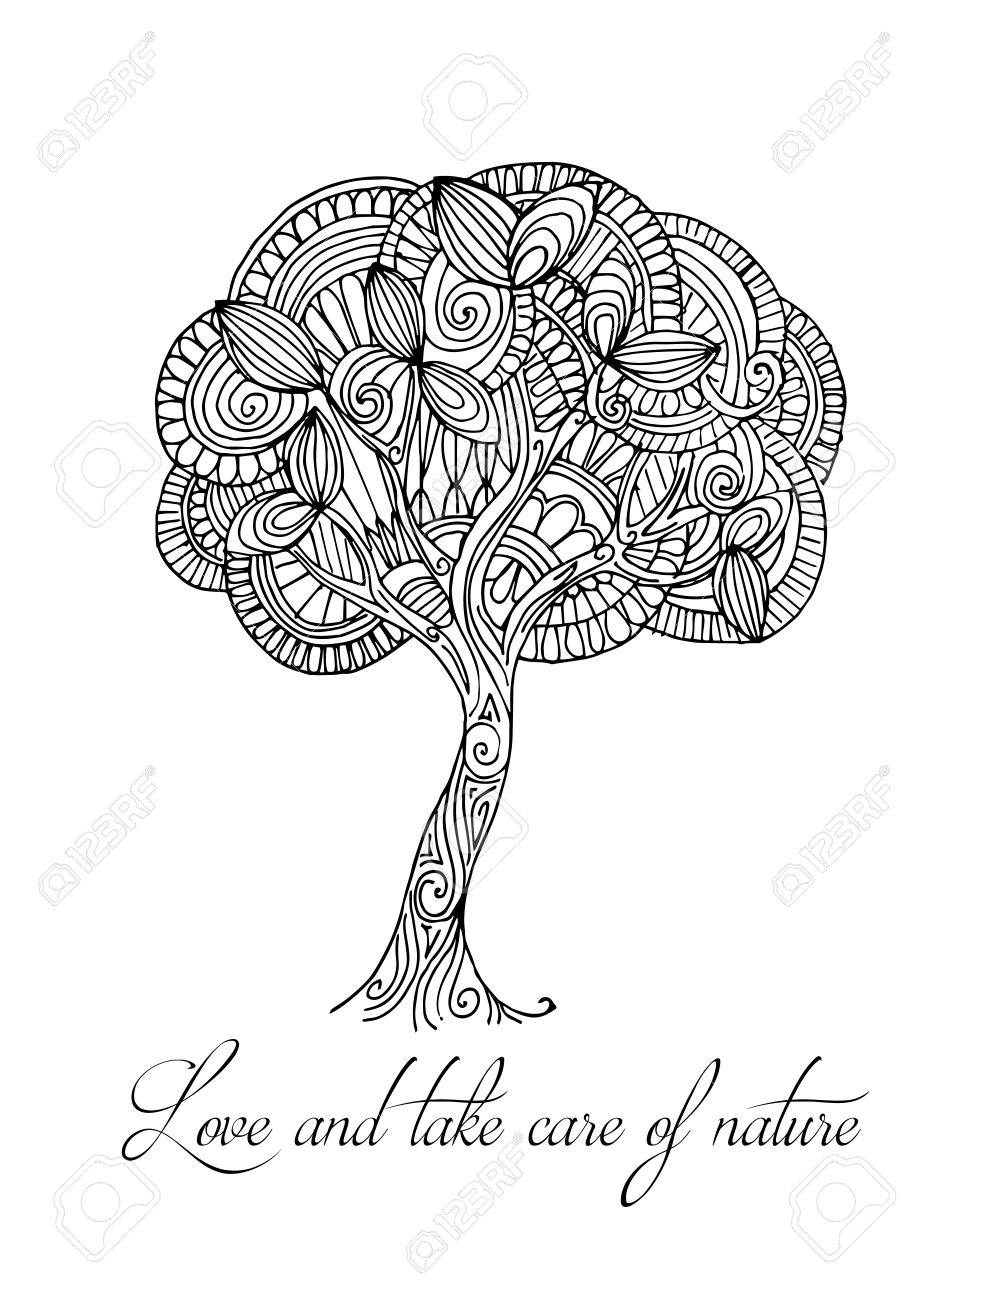 Hand Drawn Illustrations Abstract Black And White Tree Postcard